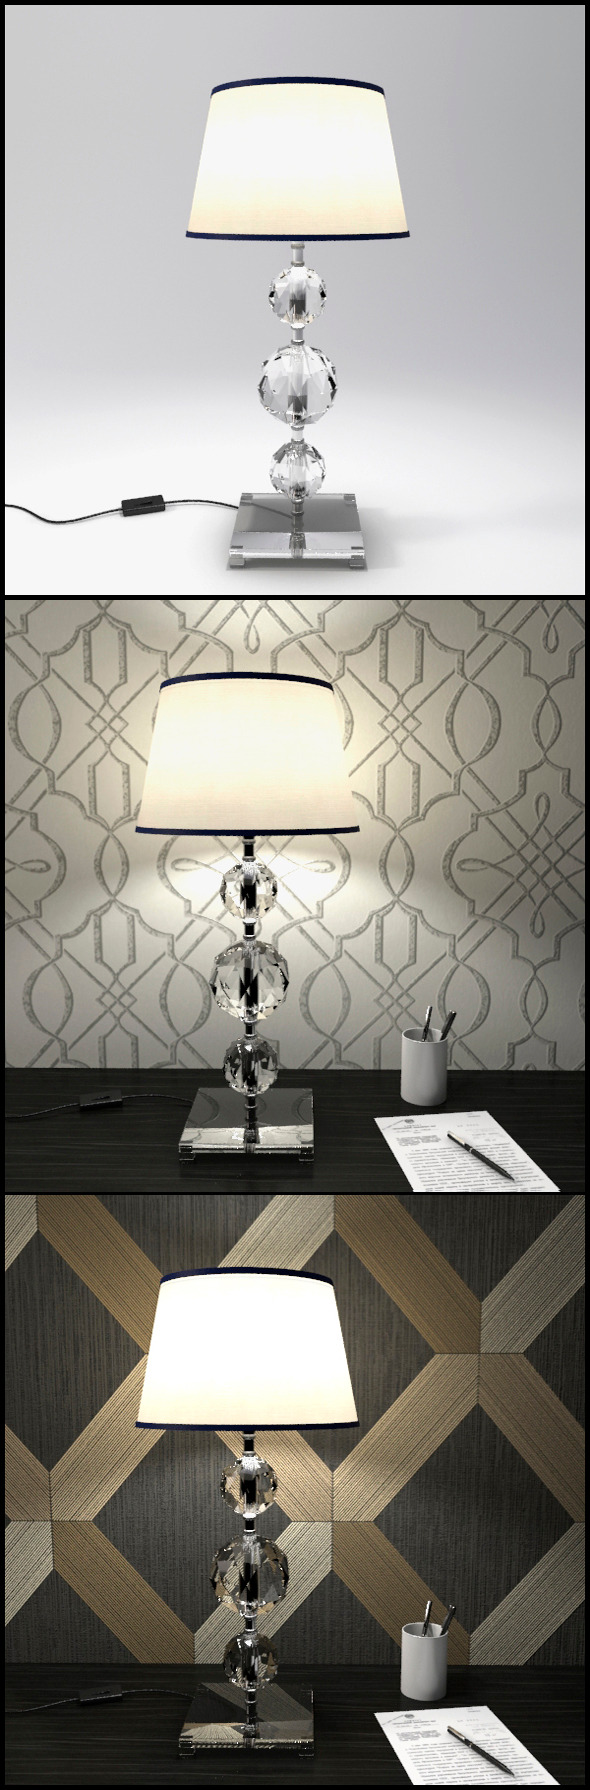 Glass Geosphere Table Lamp #7 - 3DOcean Item for Sale